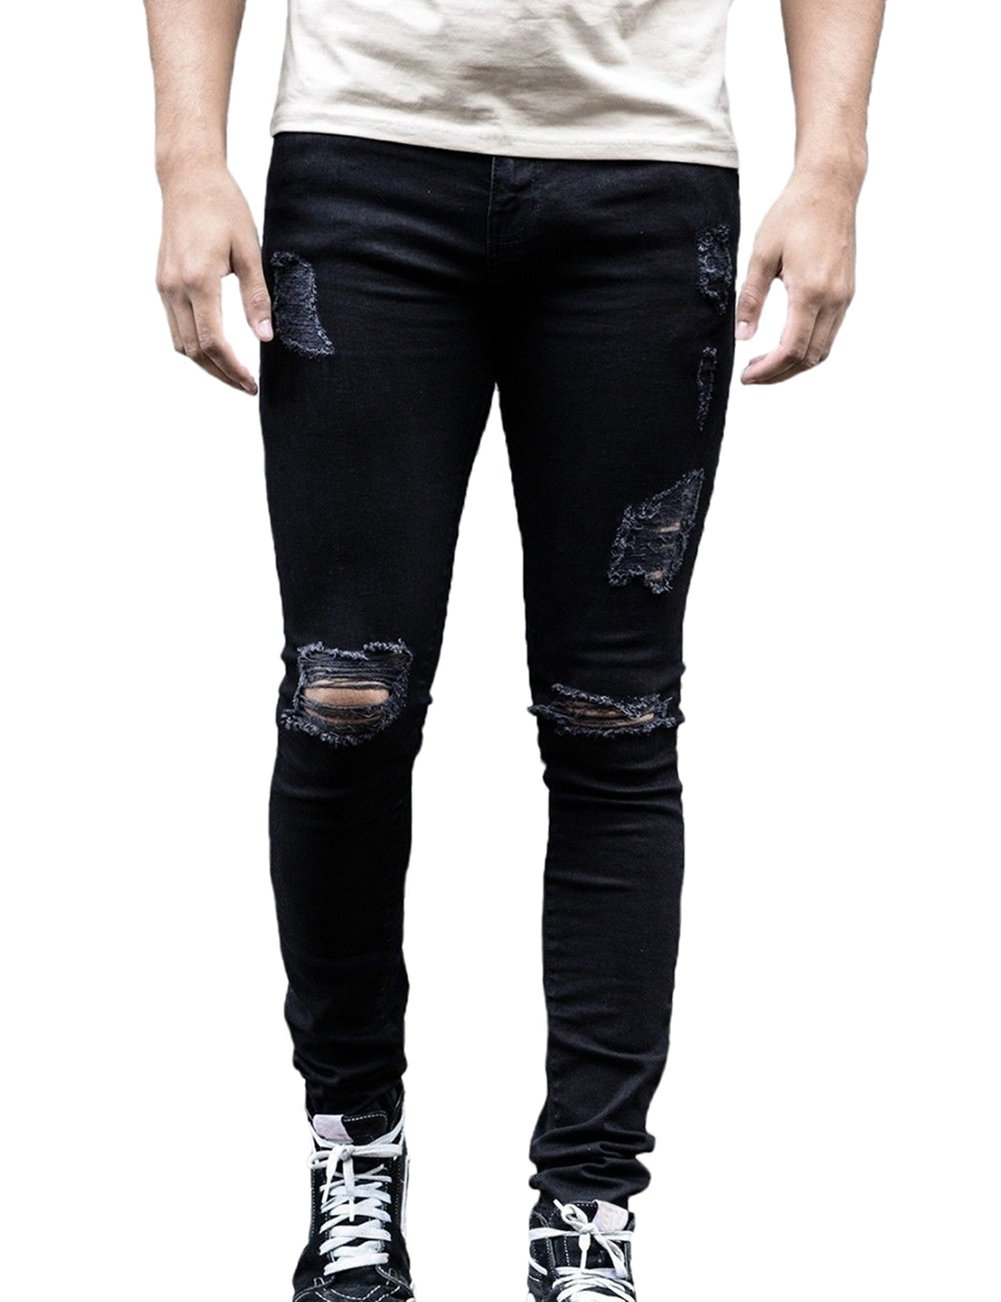 XARAZA Men's Ripped Distressed Full Length Skinny Jeans Denim Pants with Holes (Black, US 29)